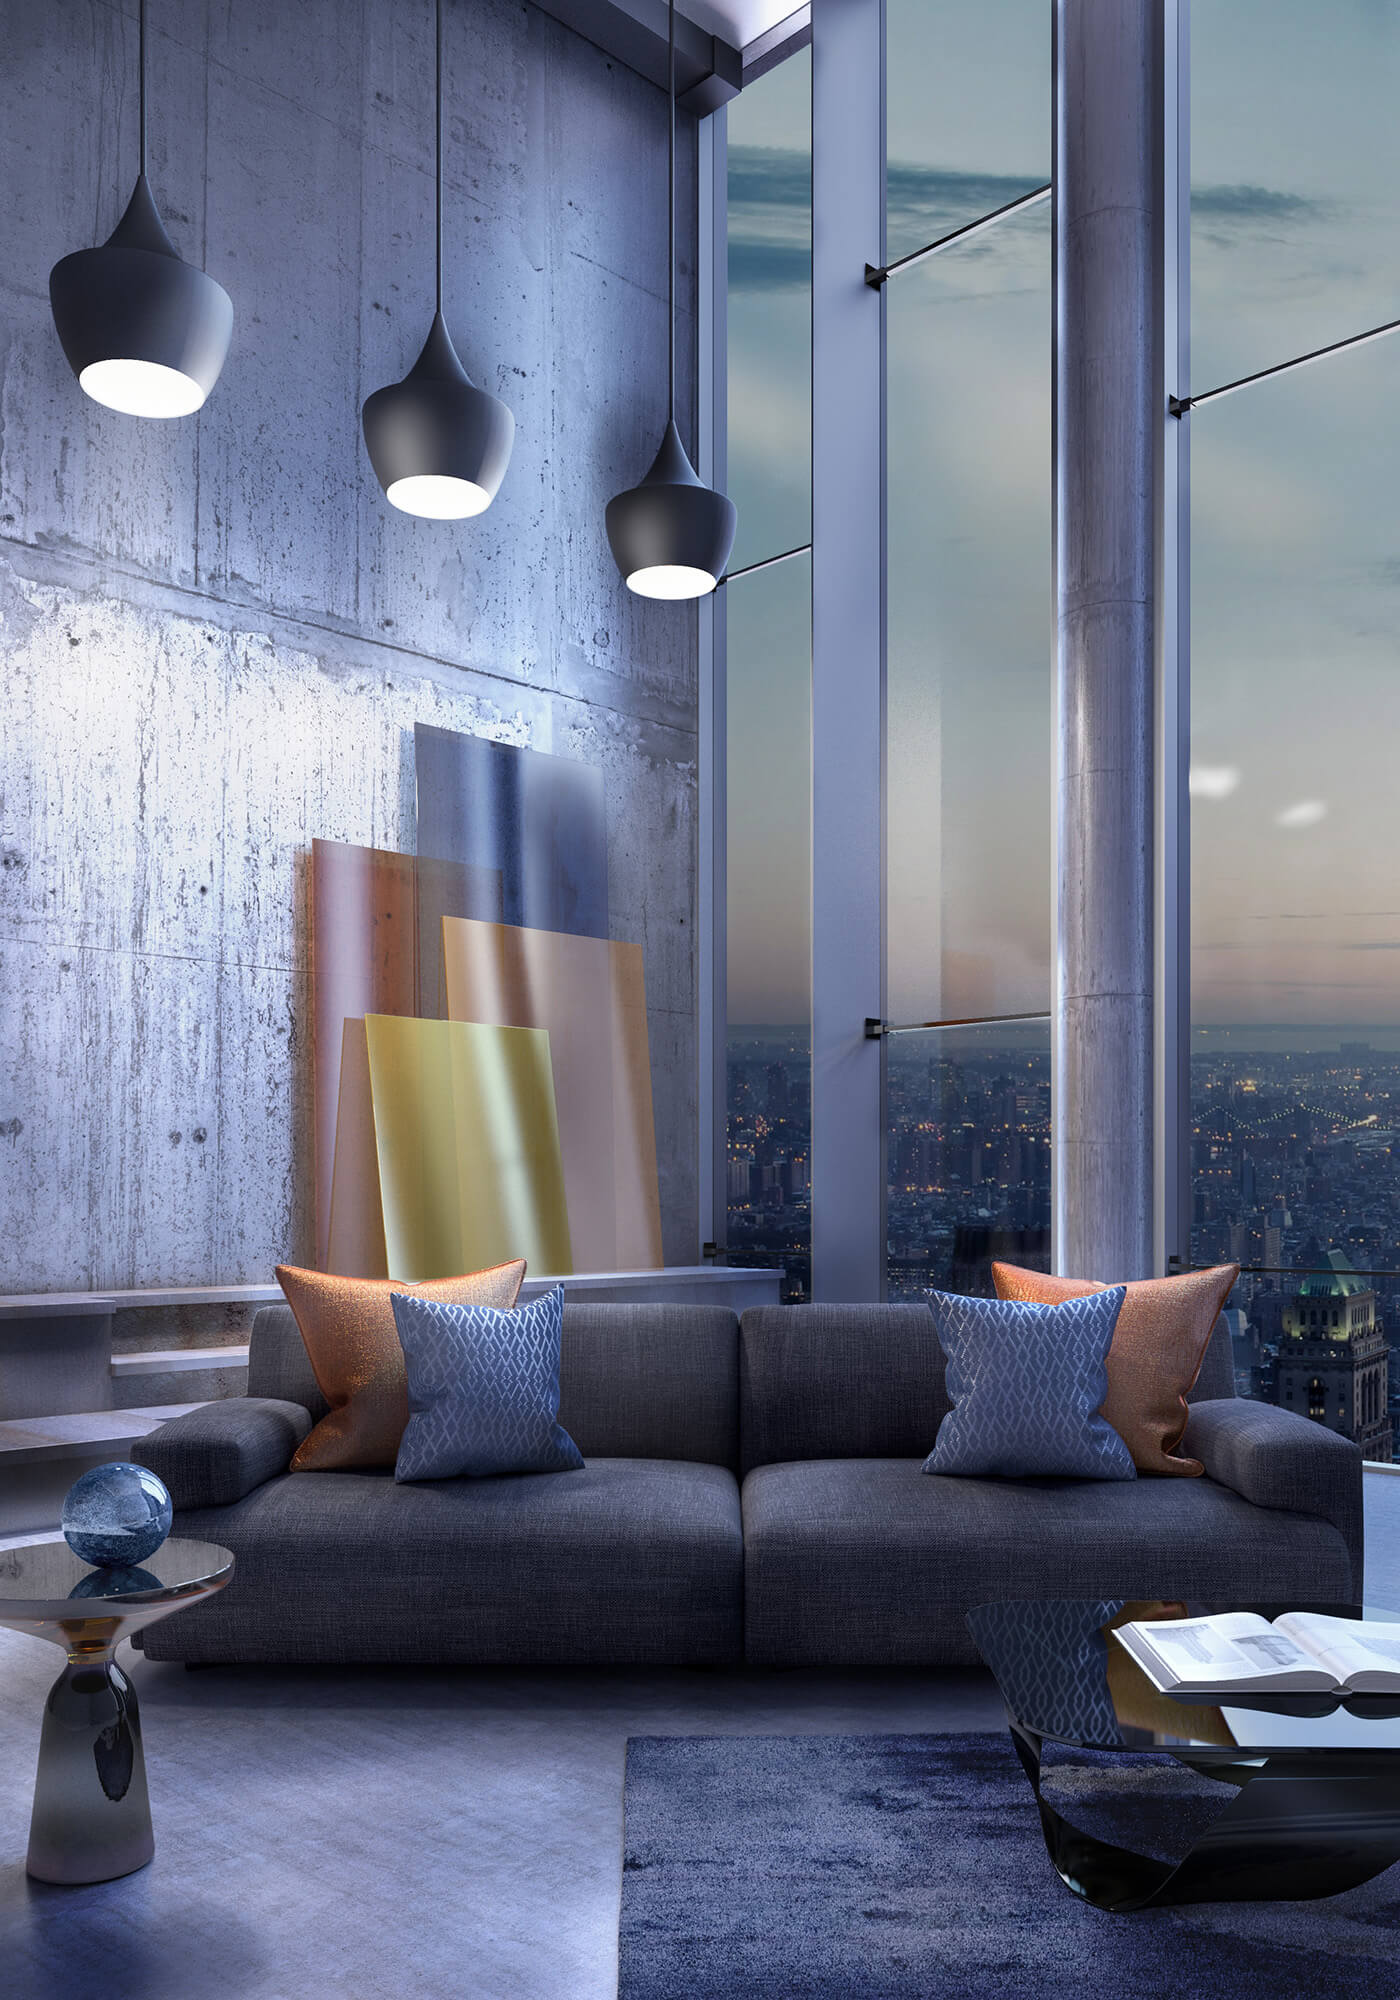 WHITE CROW STUDIOS - PENTHOUSE APARTMENT AT DUSK